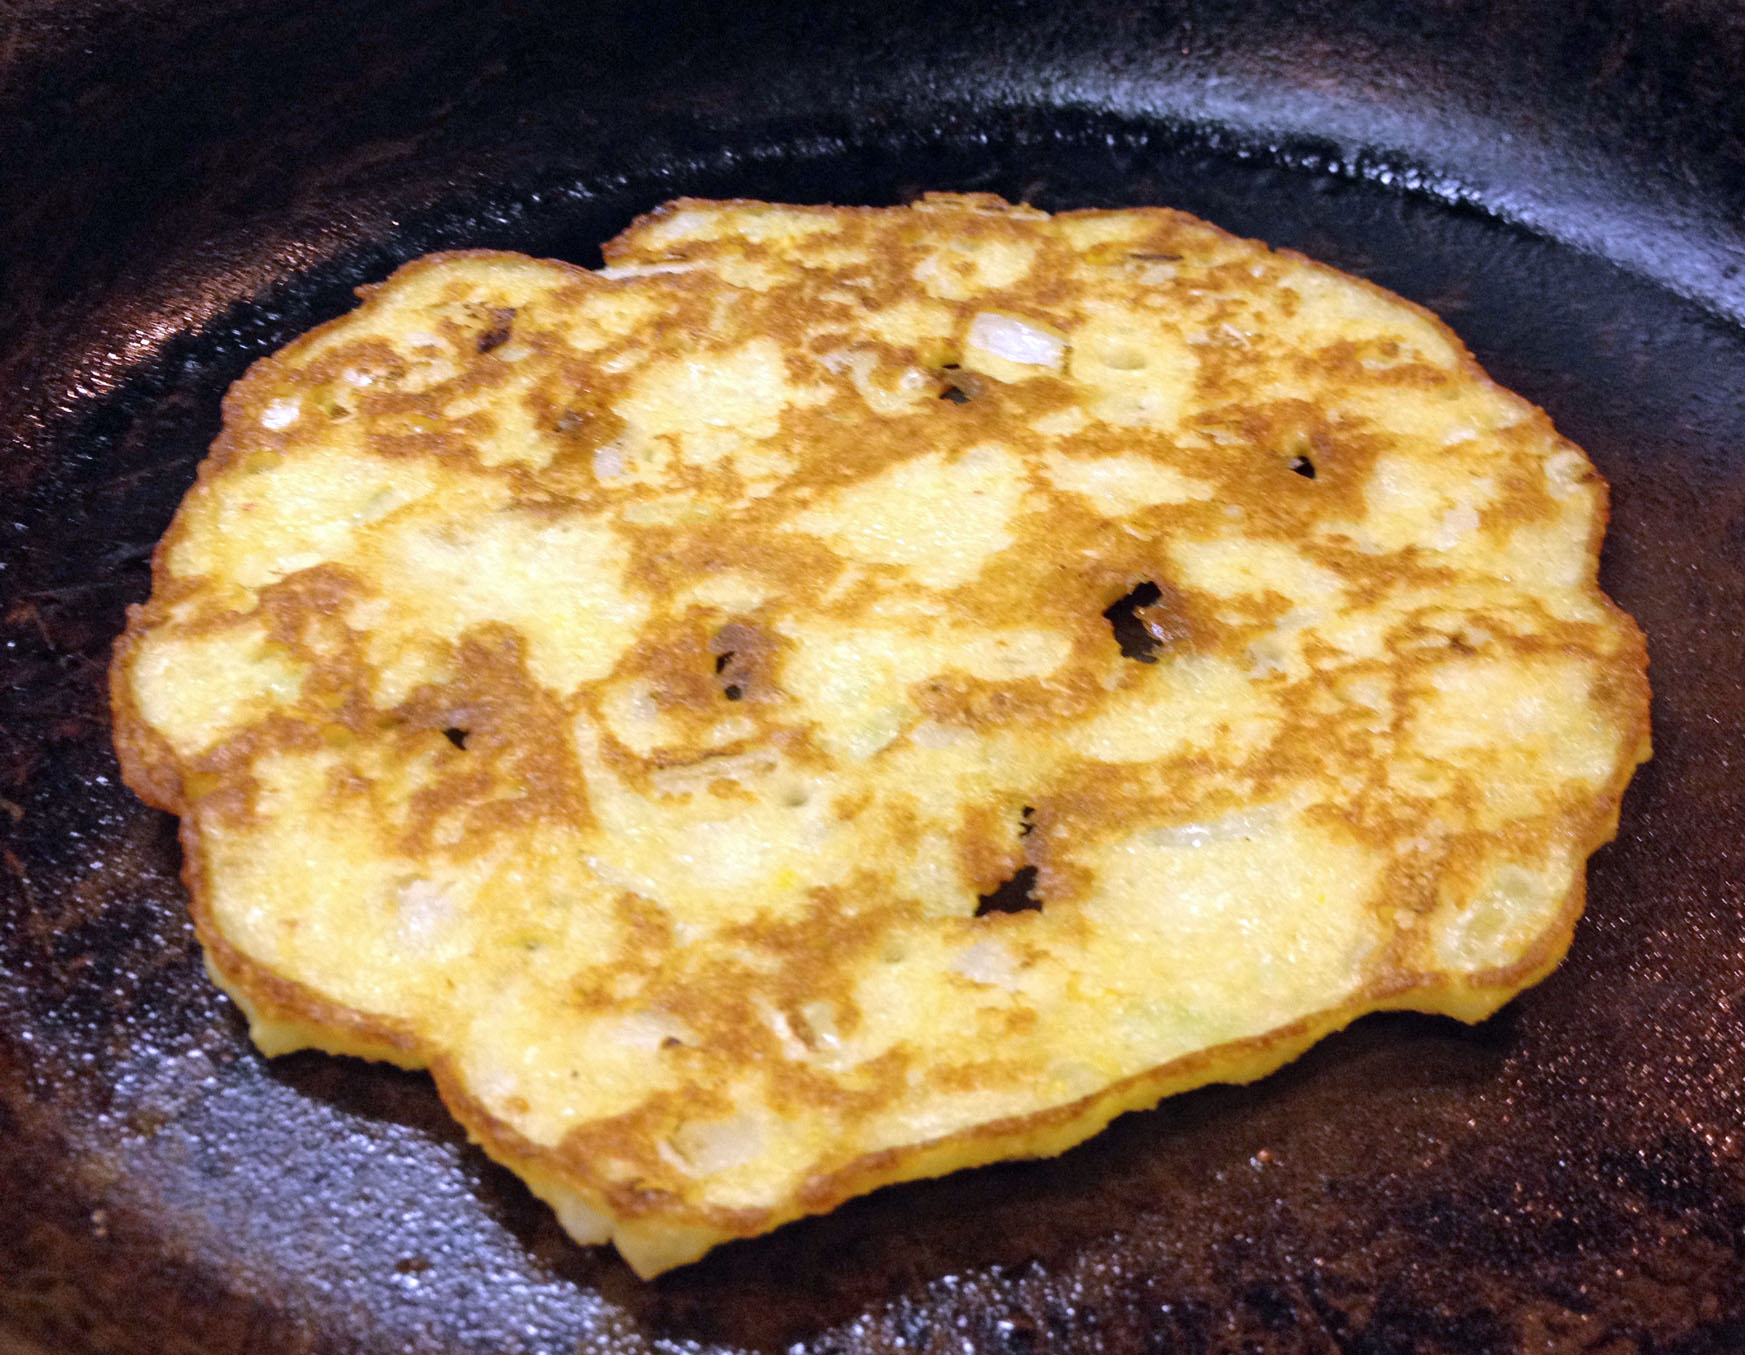 Crispy Rice and Lentils Pancakes (Adai)